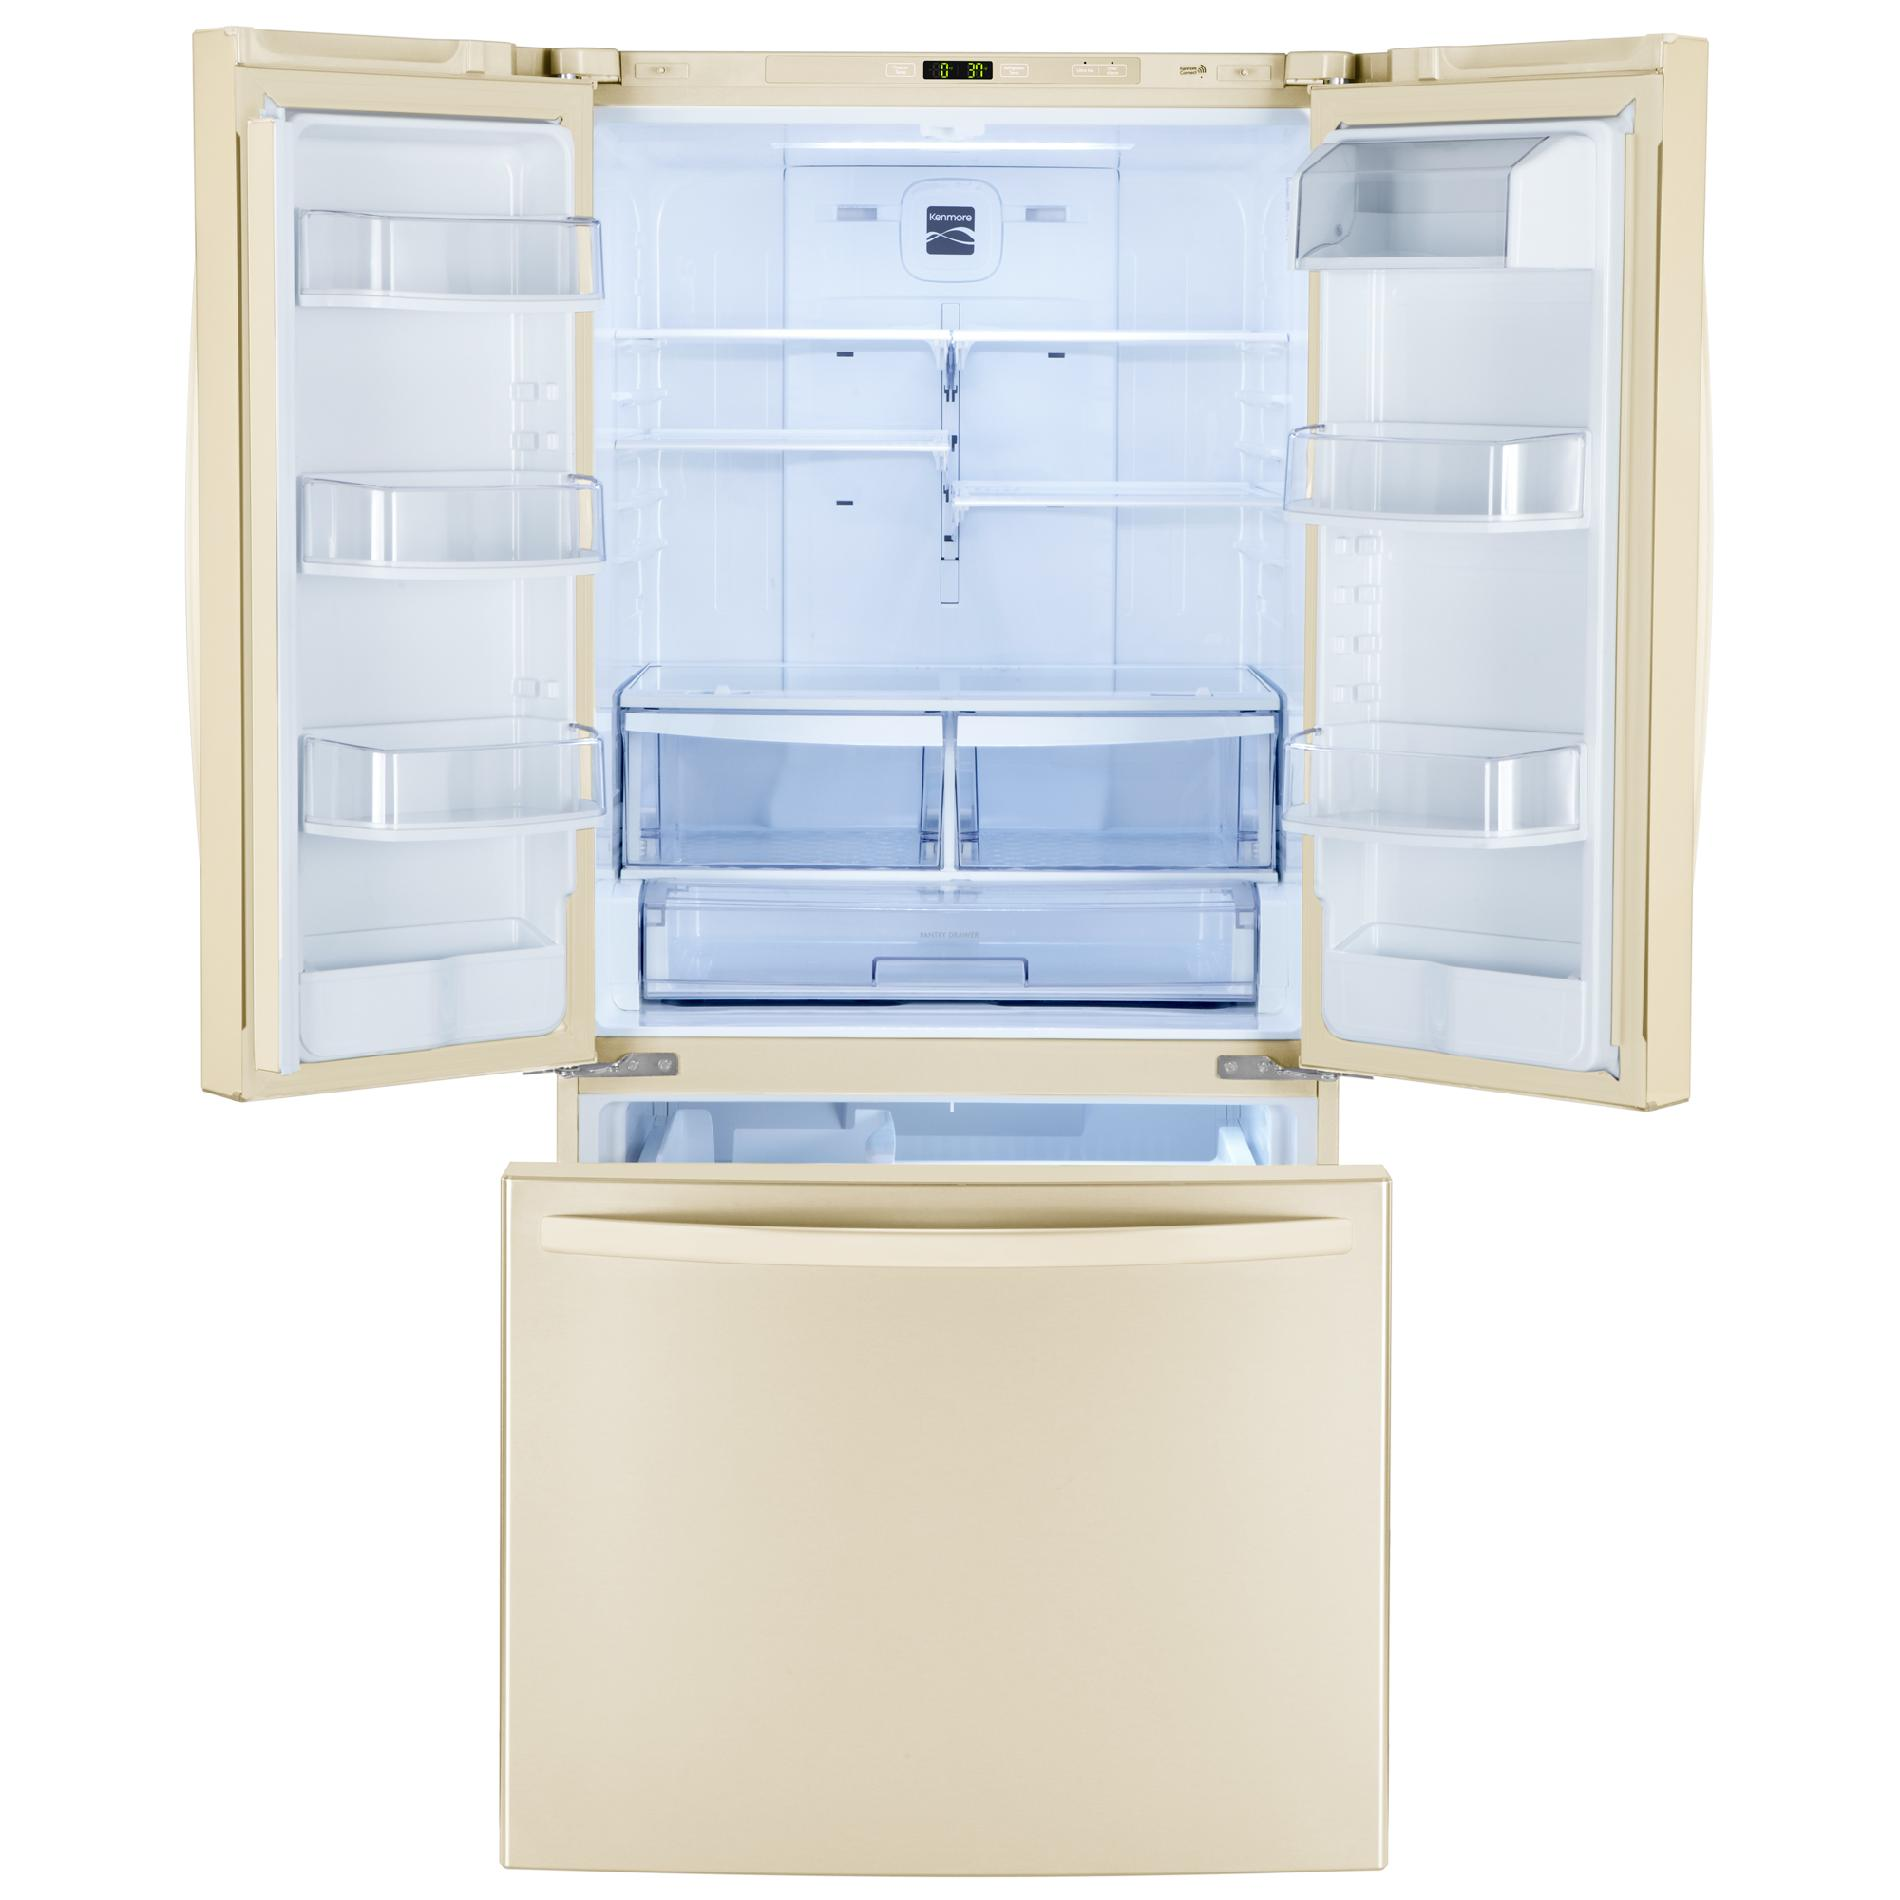 Kenmore 23.6 cu. ft.  French Door Bottom-Freezer Refrigerator - Bisque